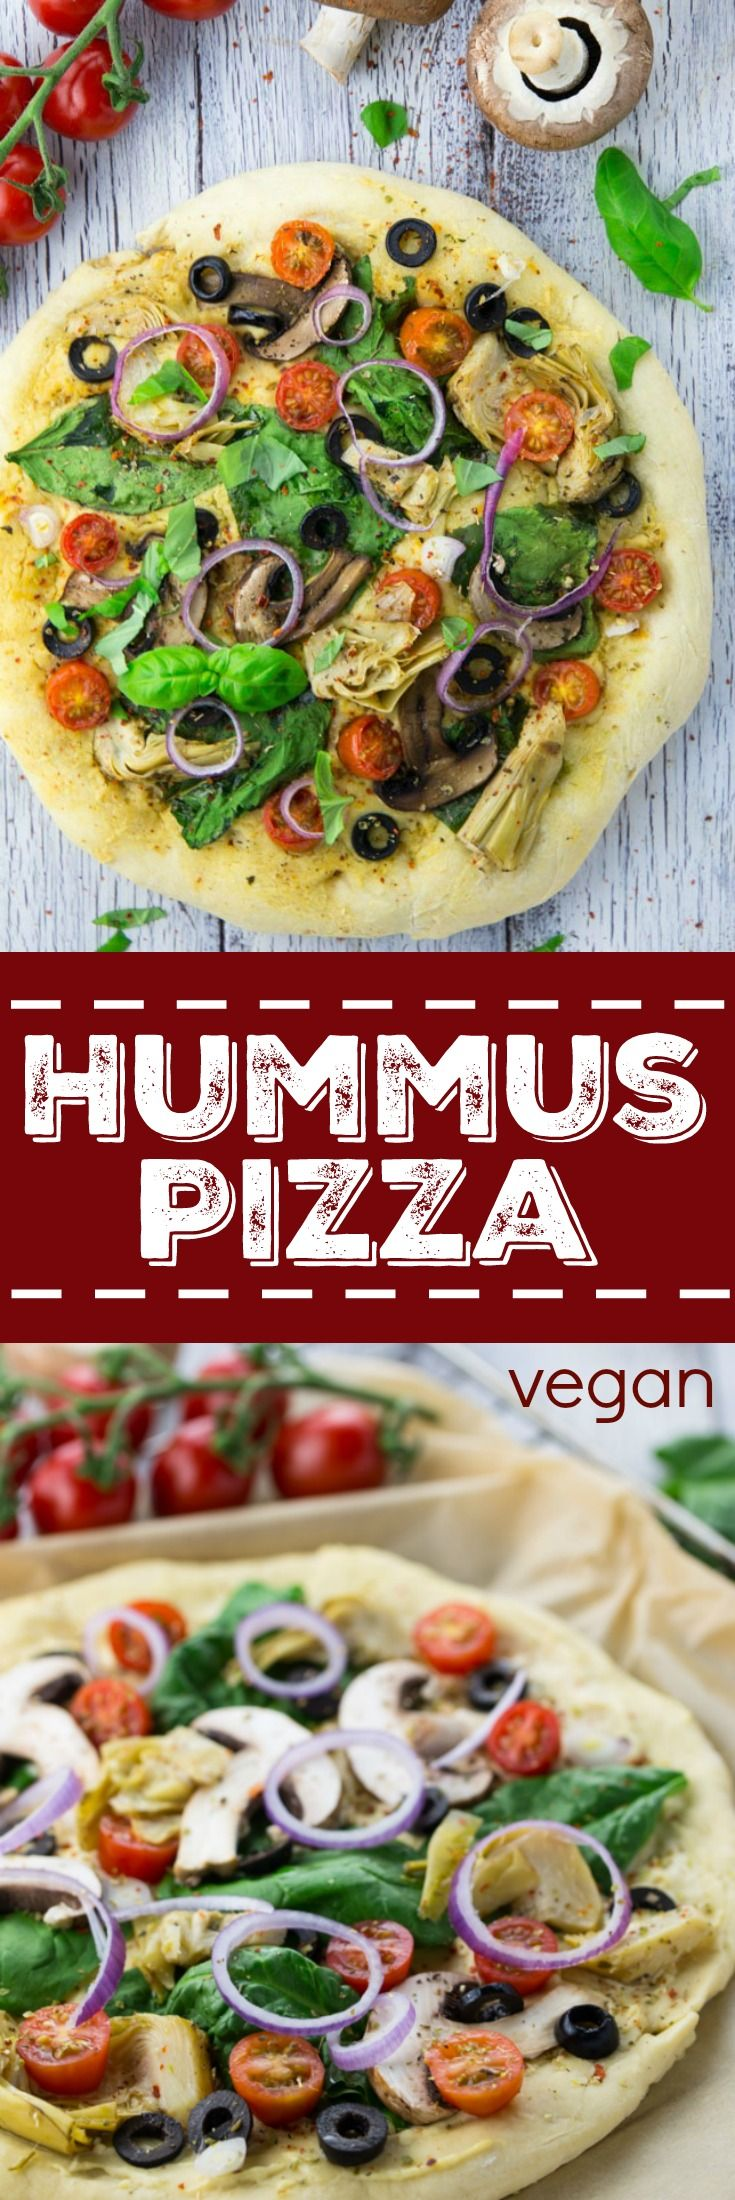 I love hummus and I love pizza. So I thought why not just try hummus pizza?! This vegan pizza with spinach, olives, and artichokes is one of my favorites!